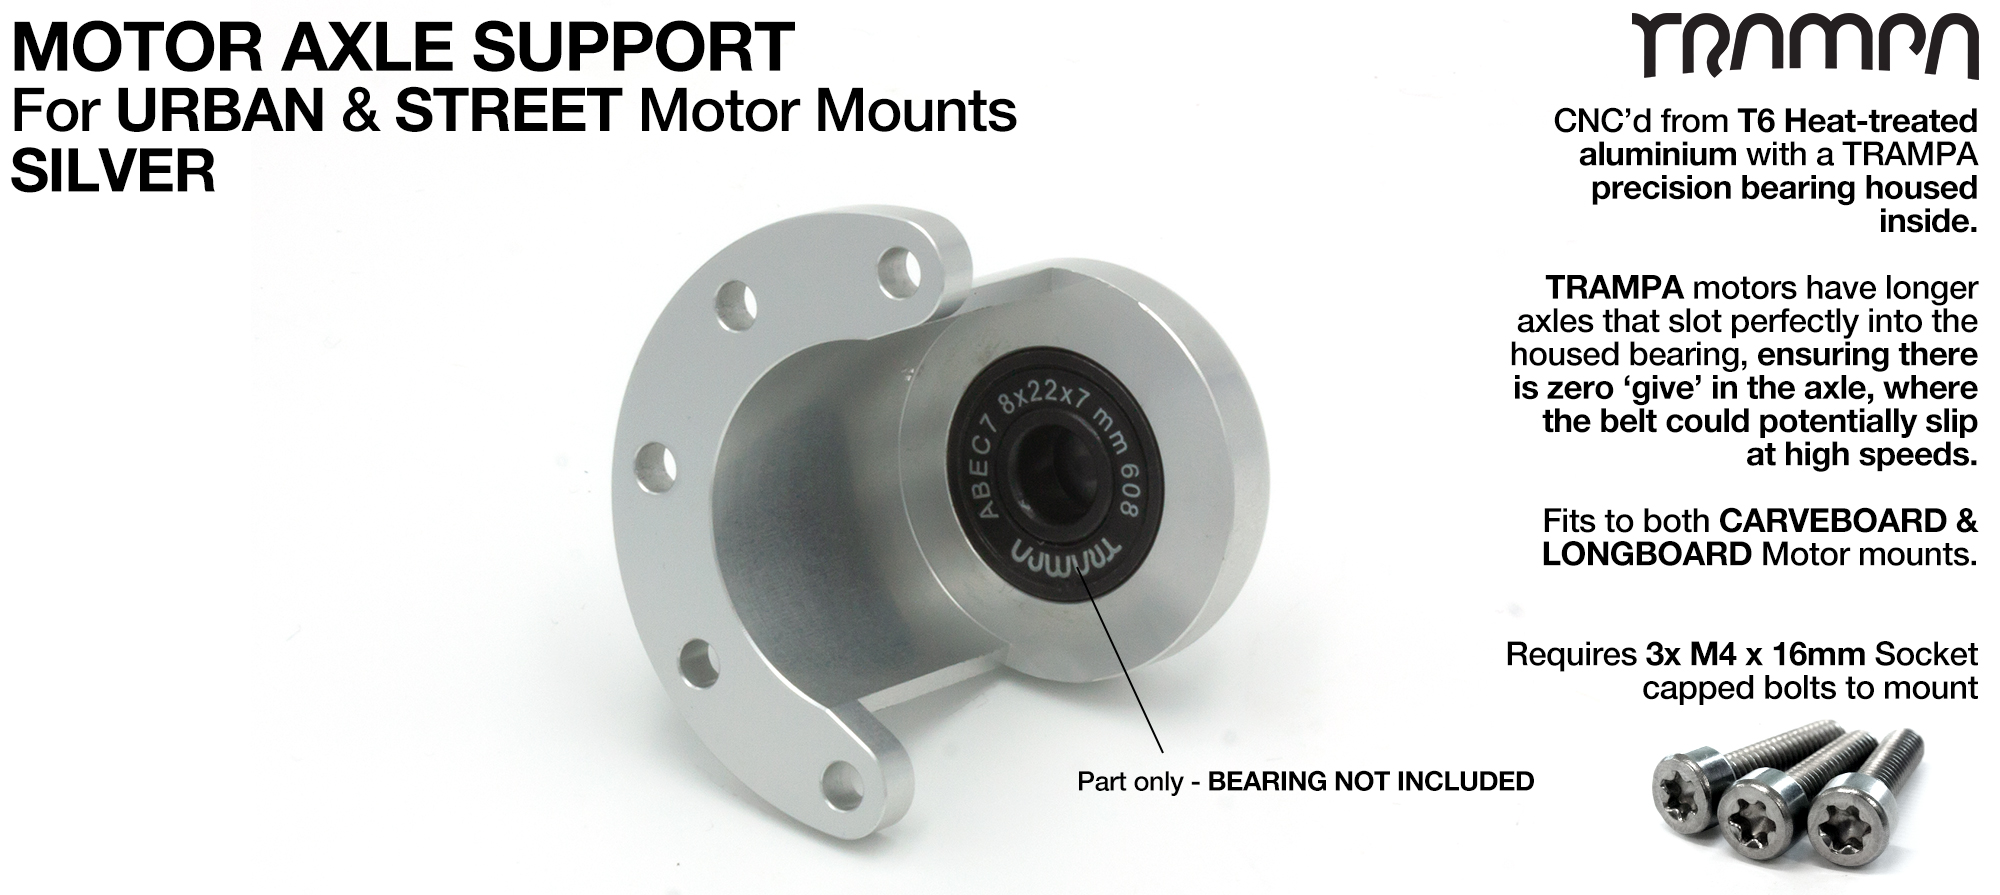 Motor Axle Support for Spring Truck Motor Mounts UNIVERSAL - SILVER